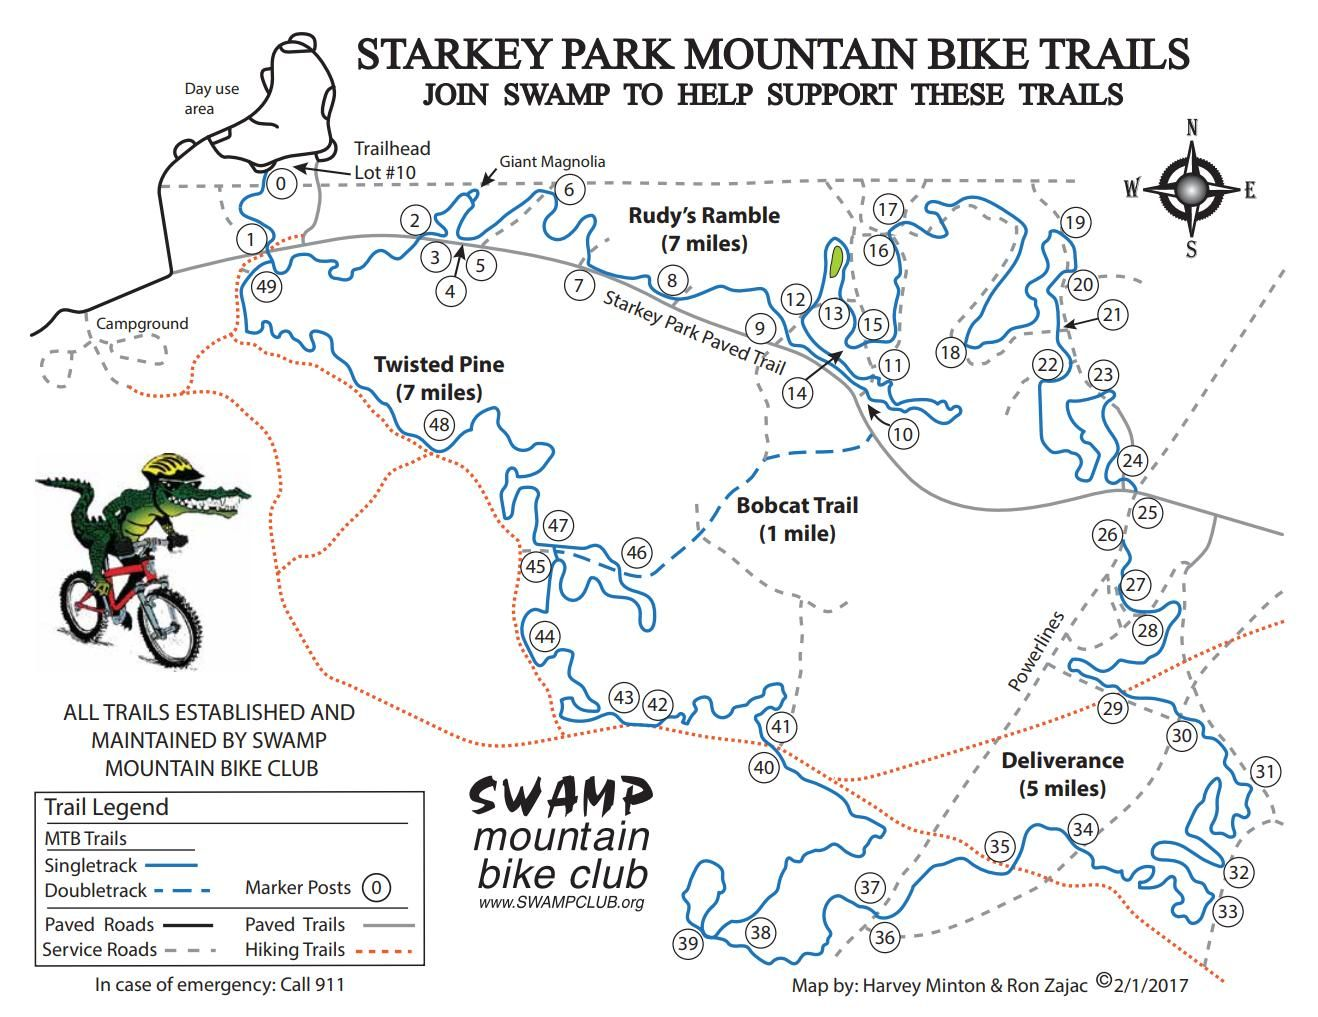 Jay B. Starkey Wilderness Park mountain bike trails in 2020 ... Case Mountain Trail Map on pachaug state forest trail map, franklin state forest tn trail map, sunny valley preserve trail map, case mt manchester ct, giant forest trail map, case mountain cabin, mianus river park trail map, mattatuck state forest, shenipsit trail map, tyler mill trail map, bigelow hollow trail map, west hartford reservoir trail map, lillinonah trail map, case mountain ct, silver city trail map, cockaponset state forest, triple divide peak trail map, sleeping giant state park trail map, penwood state park trail map, menunkatuck trail map, seal of manchester, connecticut, brooksvale park trail map, pachaug state forest,